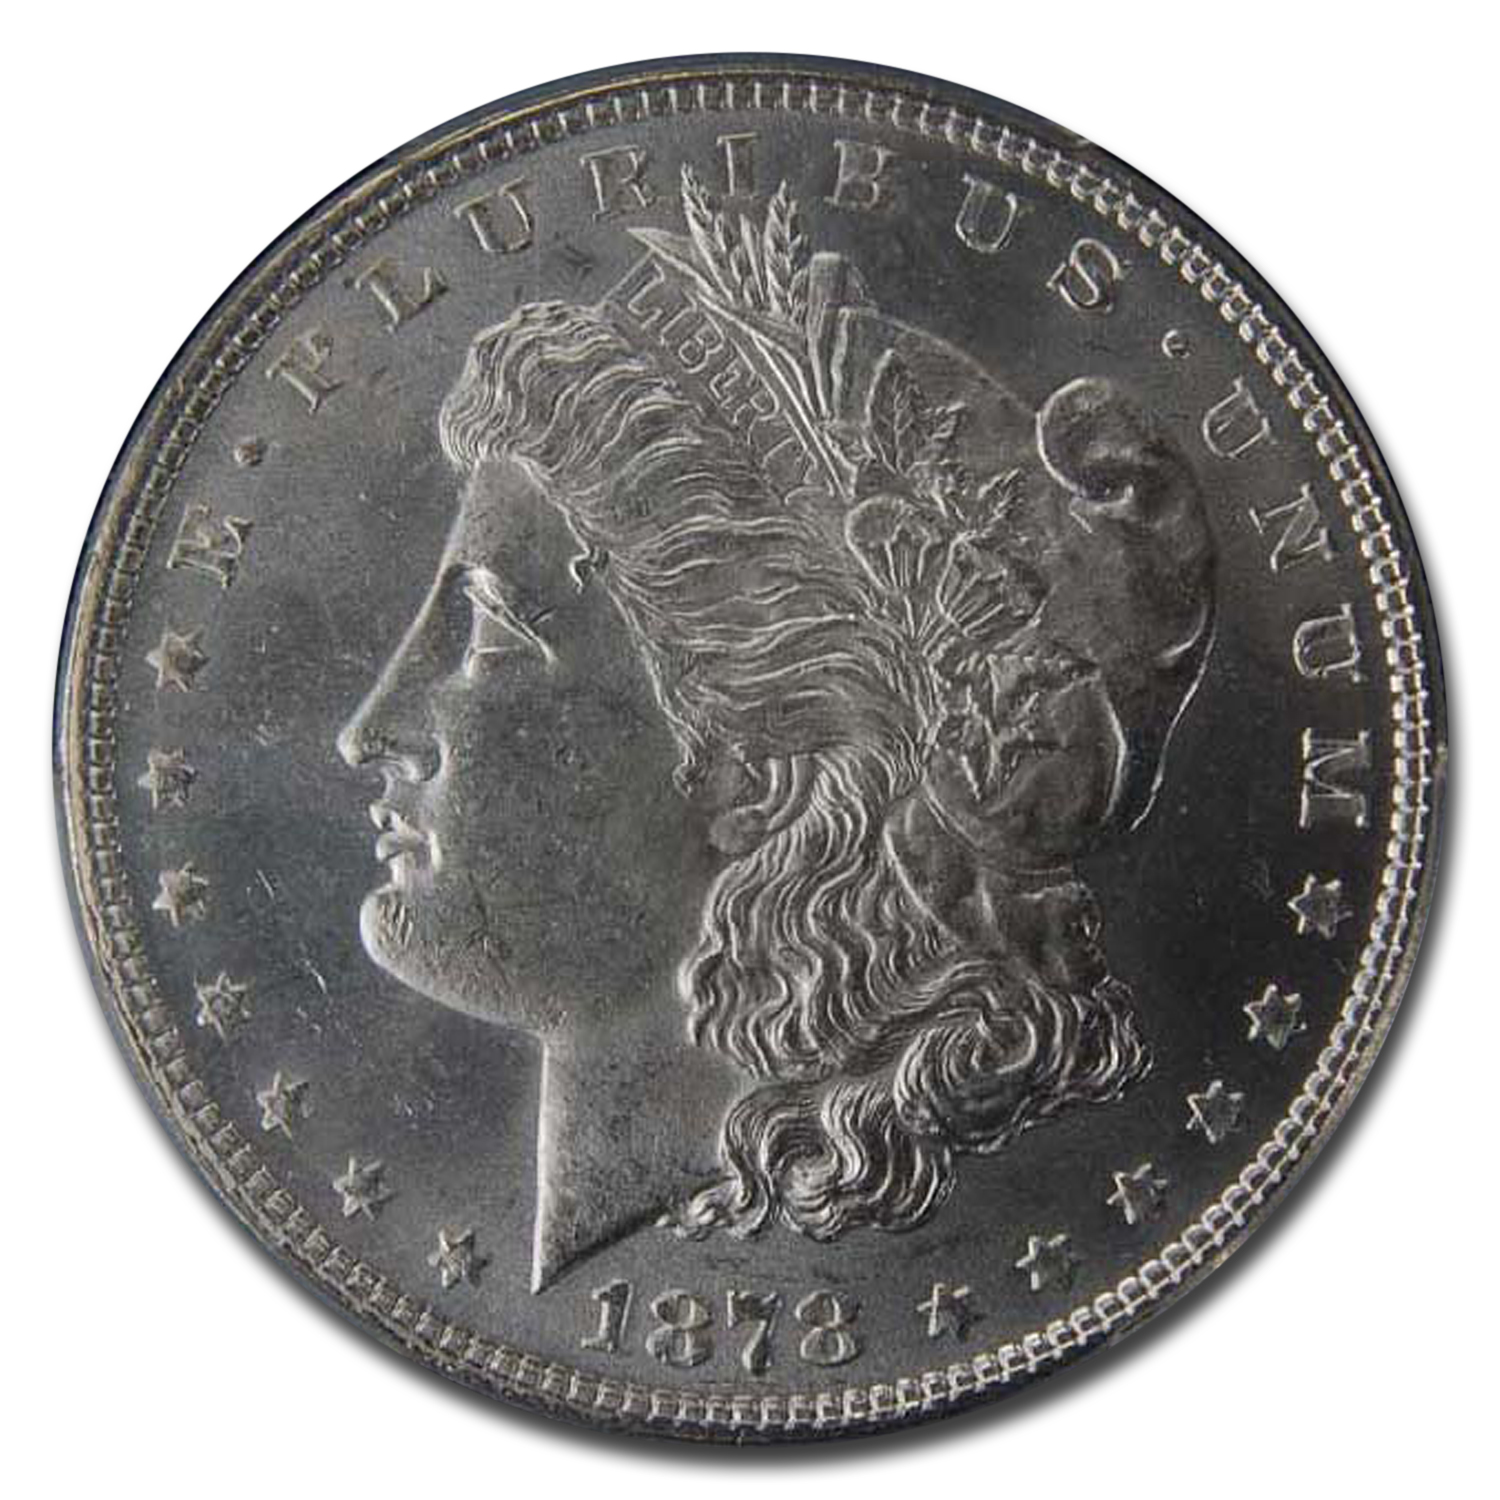 1878 Morgan Dollar 7/8 Tailfeathers MS-65 PCGS (Strong)